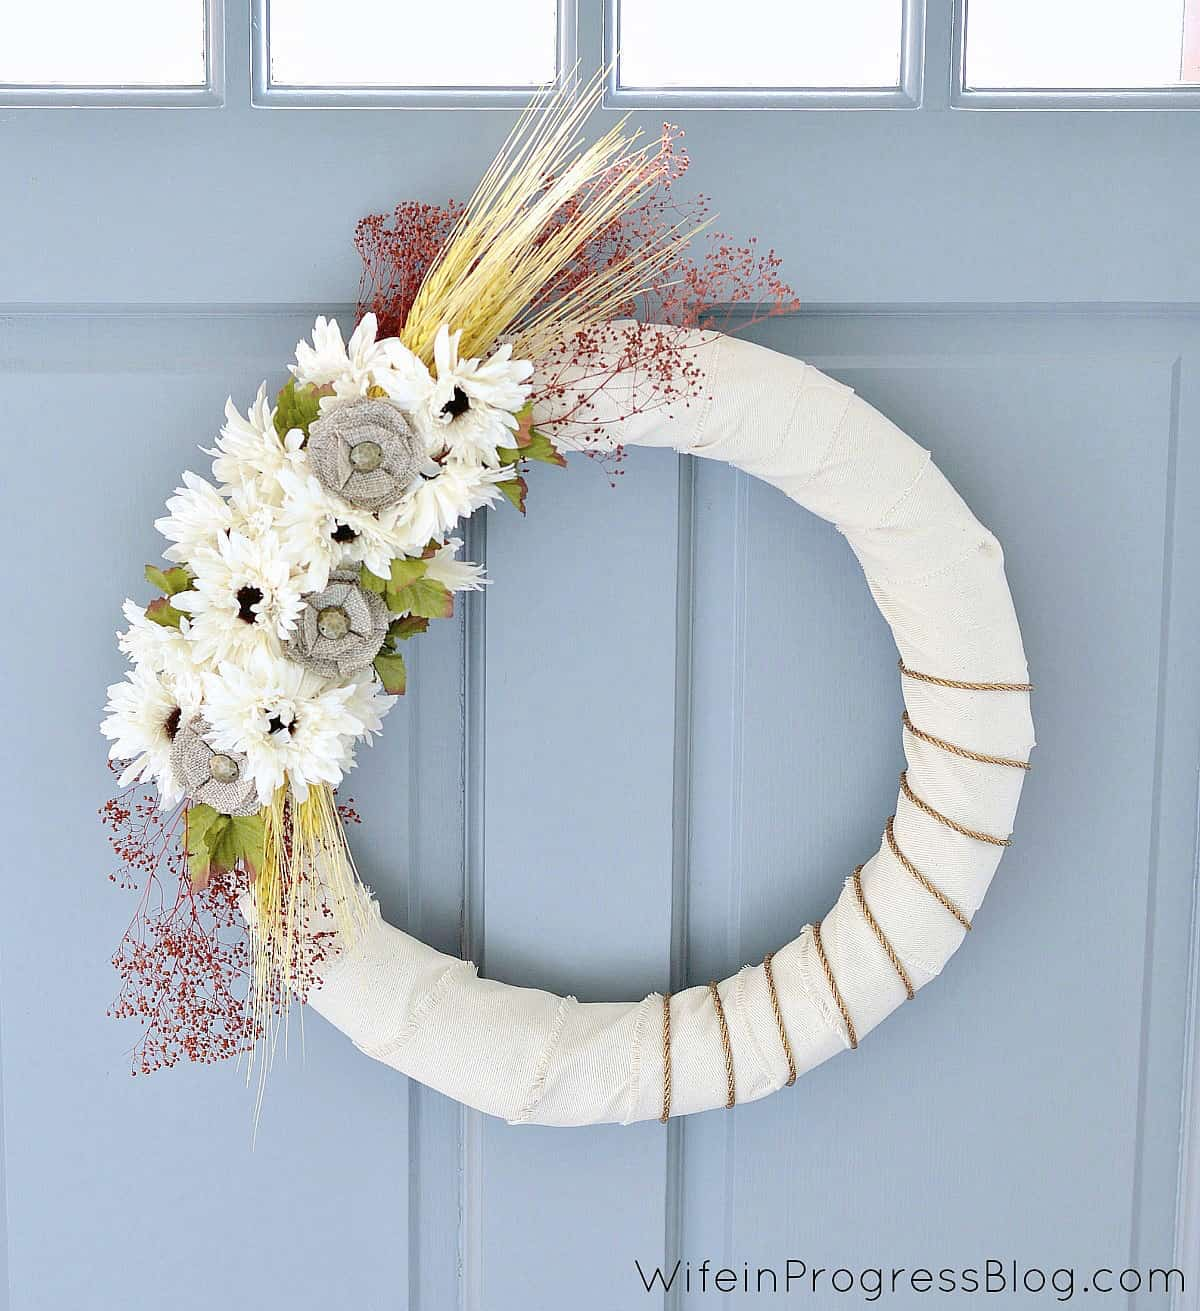 This bright DIY wreath wrapped with ribbon pops against the blue front door.